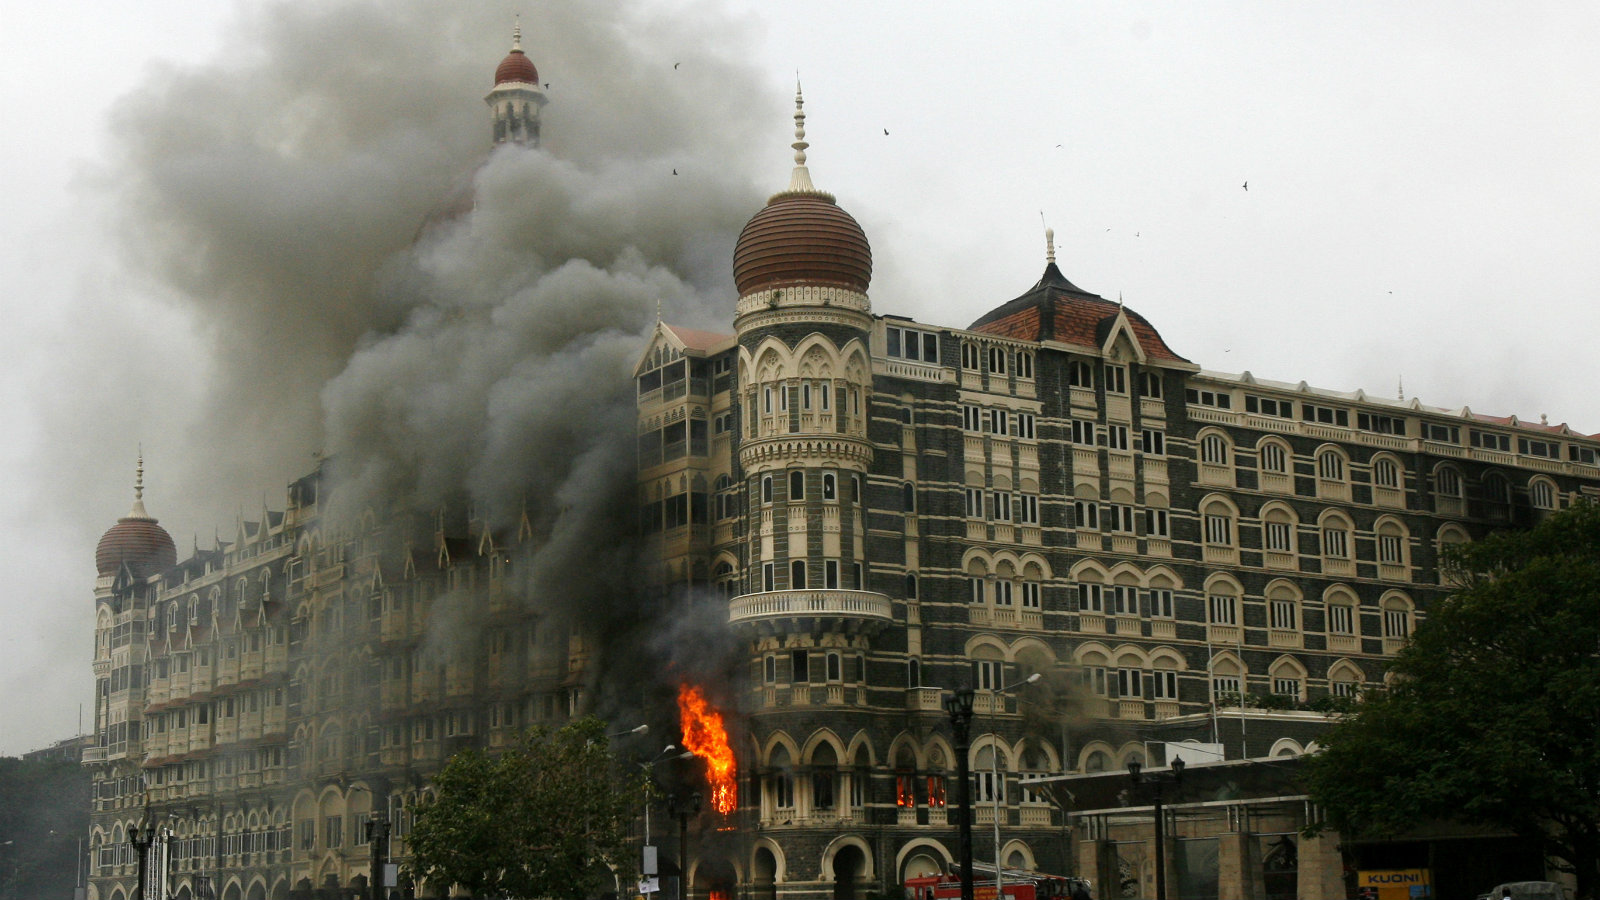 The Taj Mahal hotel is seen engulfed in smoke during a gun battle in Mumbai November 29, 2008. Operations to dislodge militants at the Taj Mahal hotel in Mumbai ended on Saturday, security officials said, and at least three Islamist gunmen were killed.